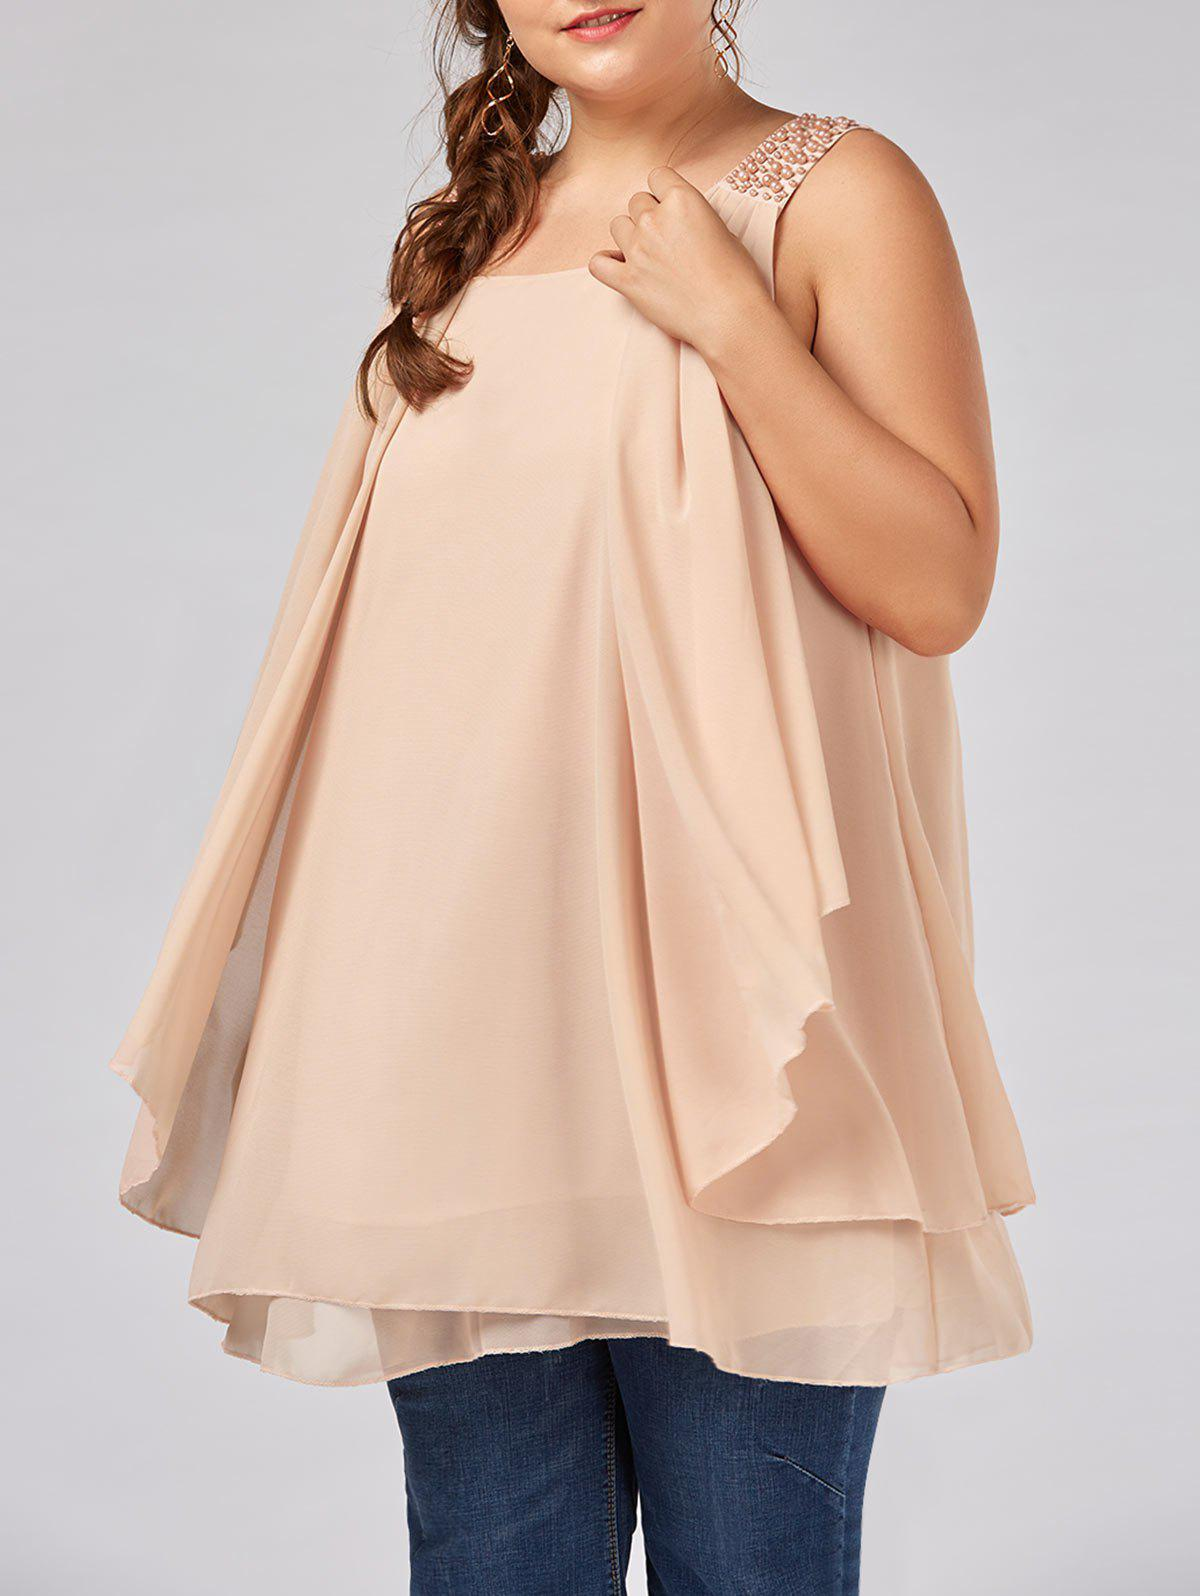 Plus Size Beaded Ruffle Layered Chiffon Flowy Tank Top plus size pocket two layered chiffon top